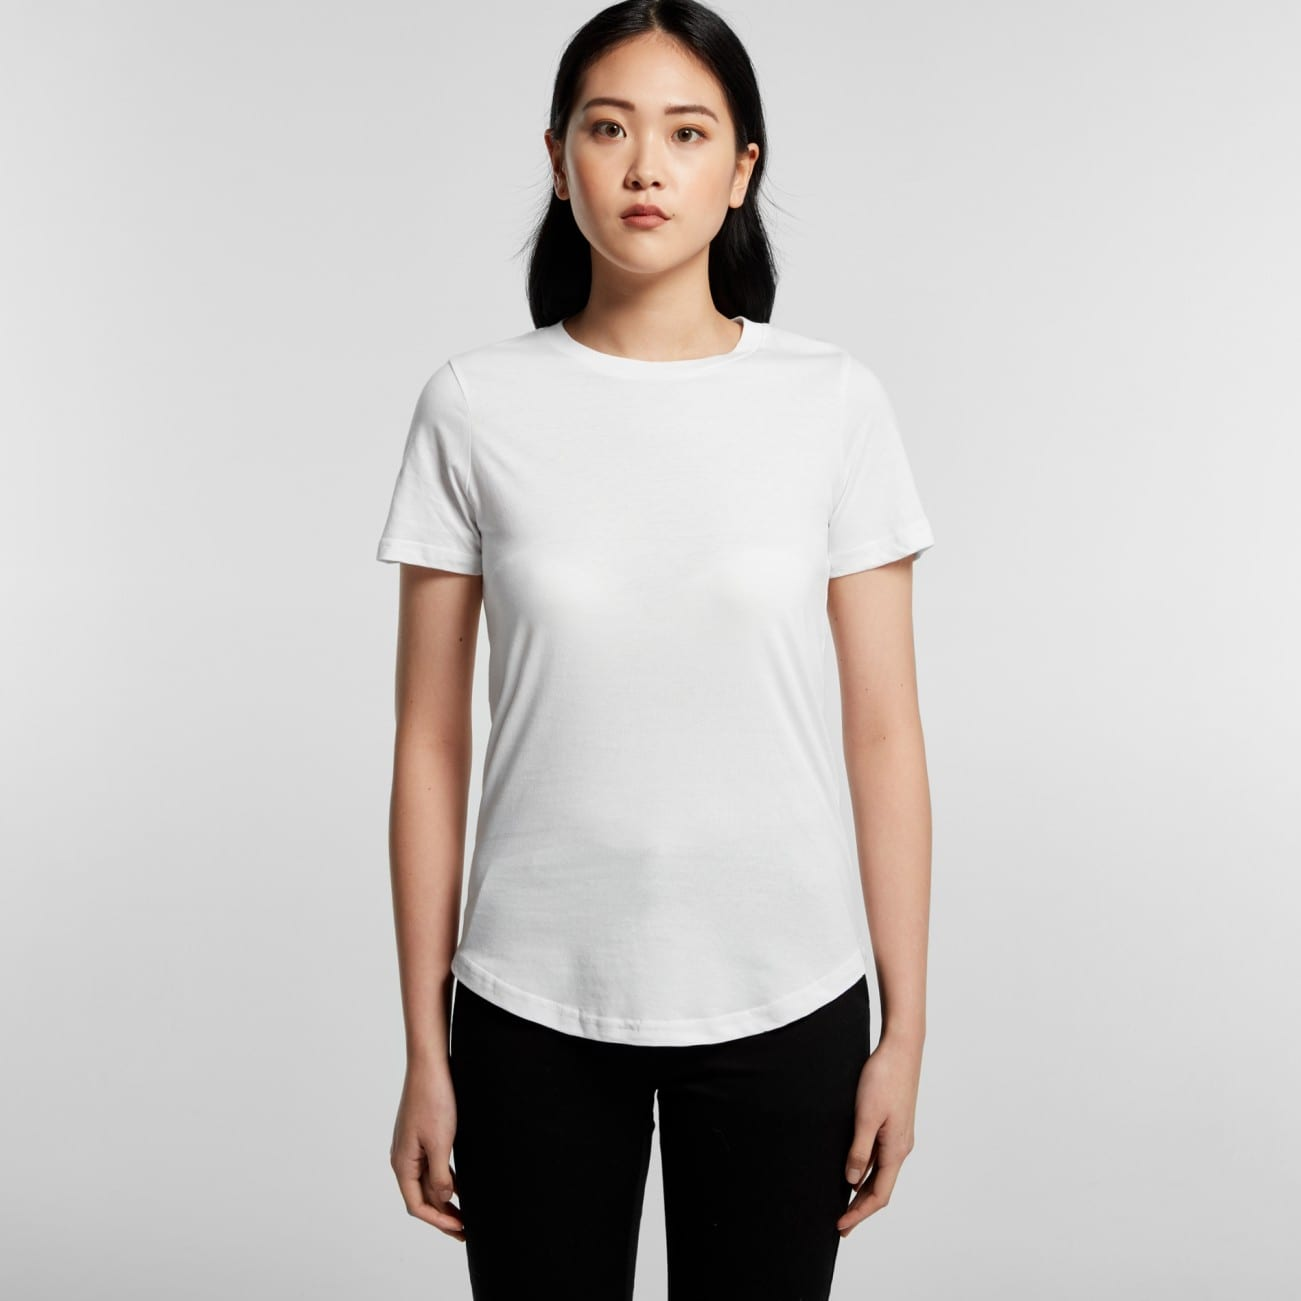 AS 4052 Womens Drop tee